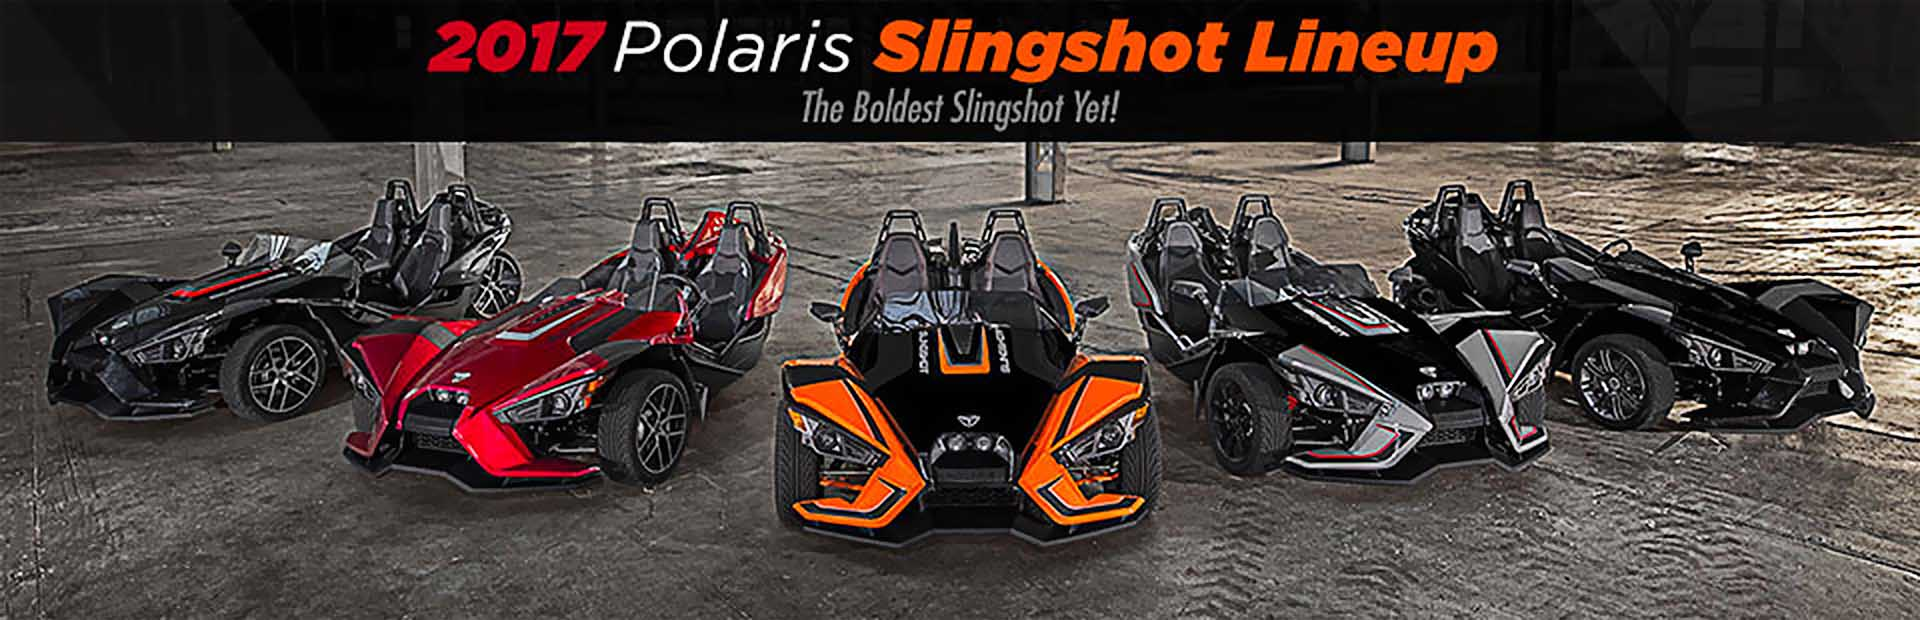 2017 Polaris Slingshot Lineup: Click here to view the models.